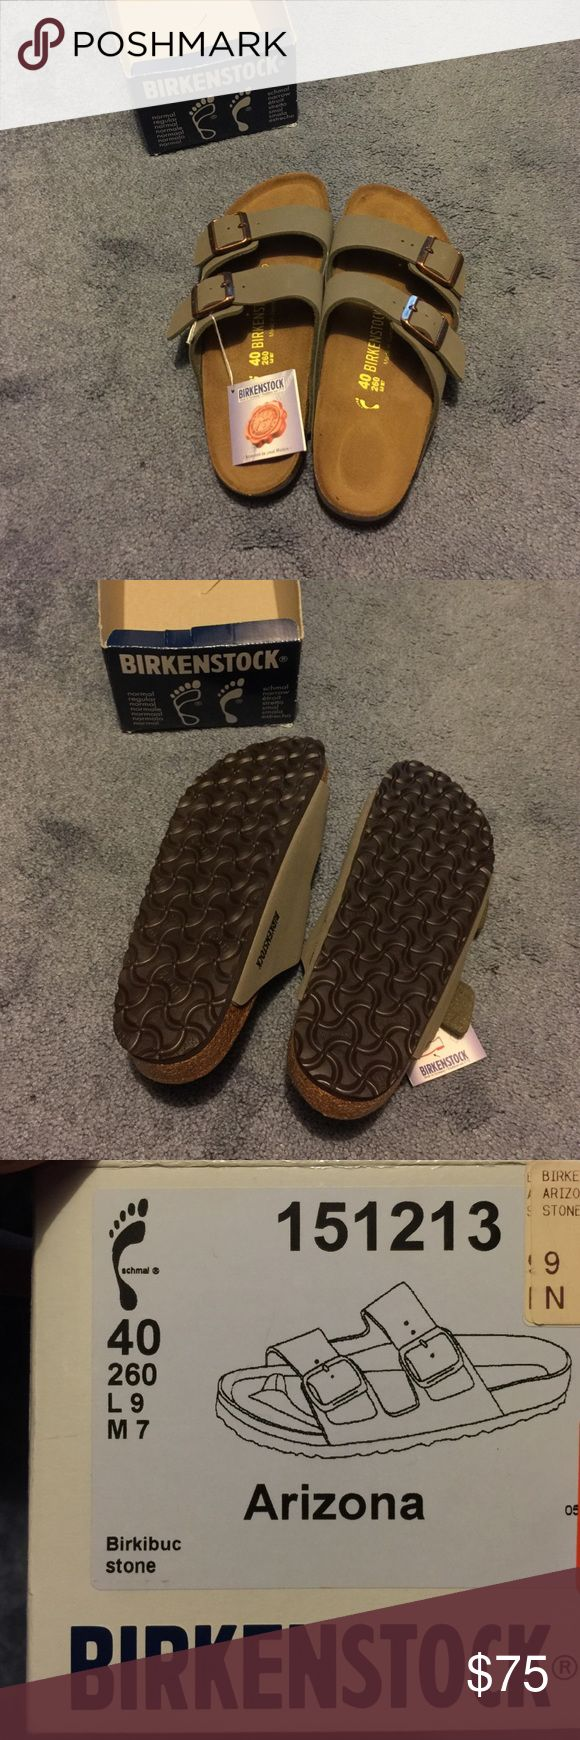 Birkenstock Arizona size 40 Brand New. Purchased over the Memorial Day holiday weekend. Color is too close to what I already have in a pair of Birkis. No flaws to note. Birkenstock Shoes Sandals